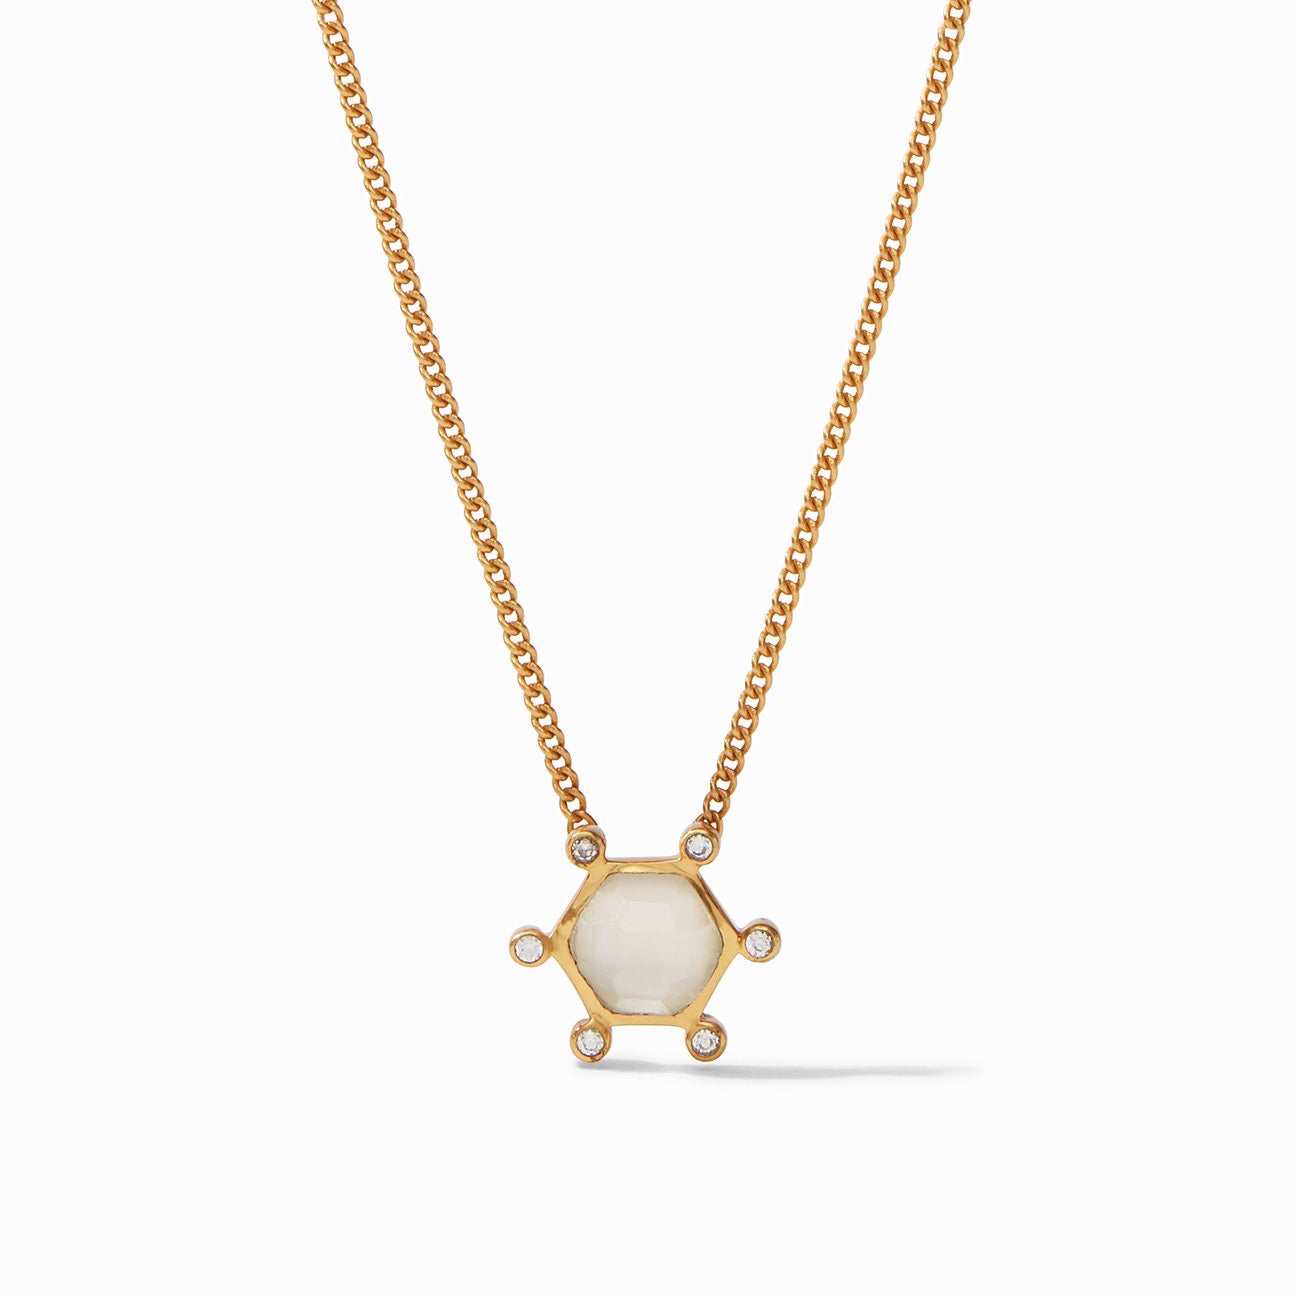 Julie Vos - Cosmo Solitaire Necklace Gold Iridescent Clear Crystal